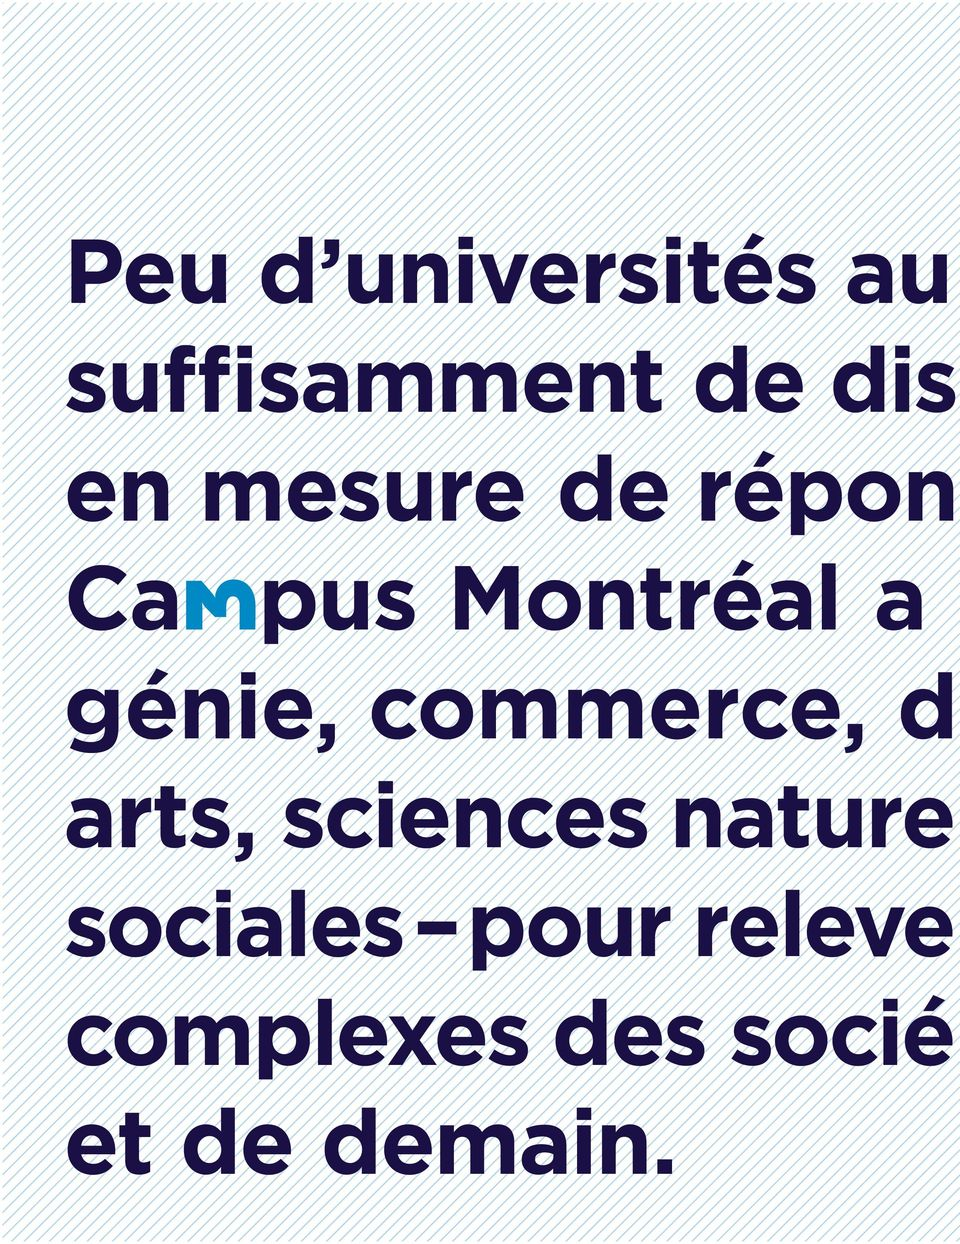 commerce, d arts, sciences naturel sociales